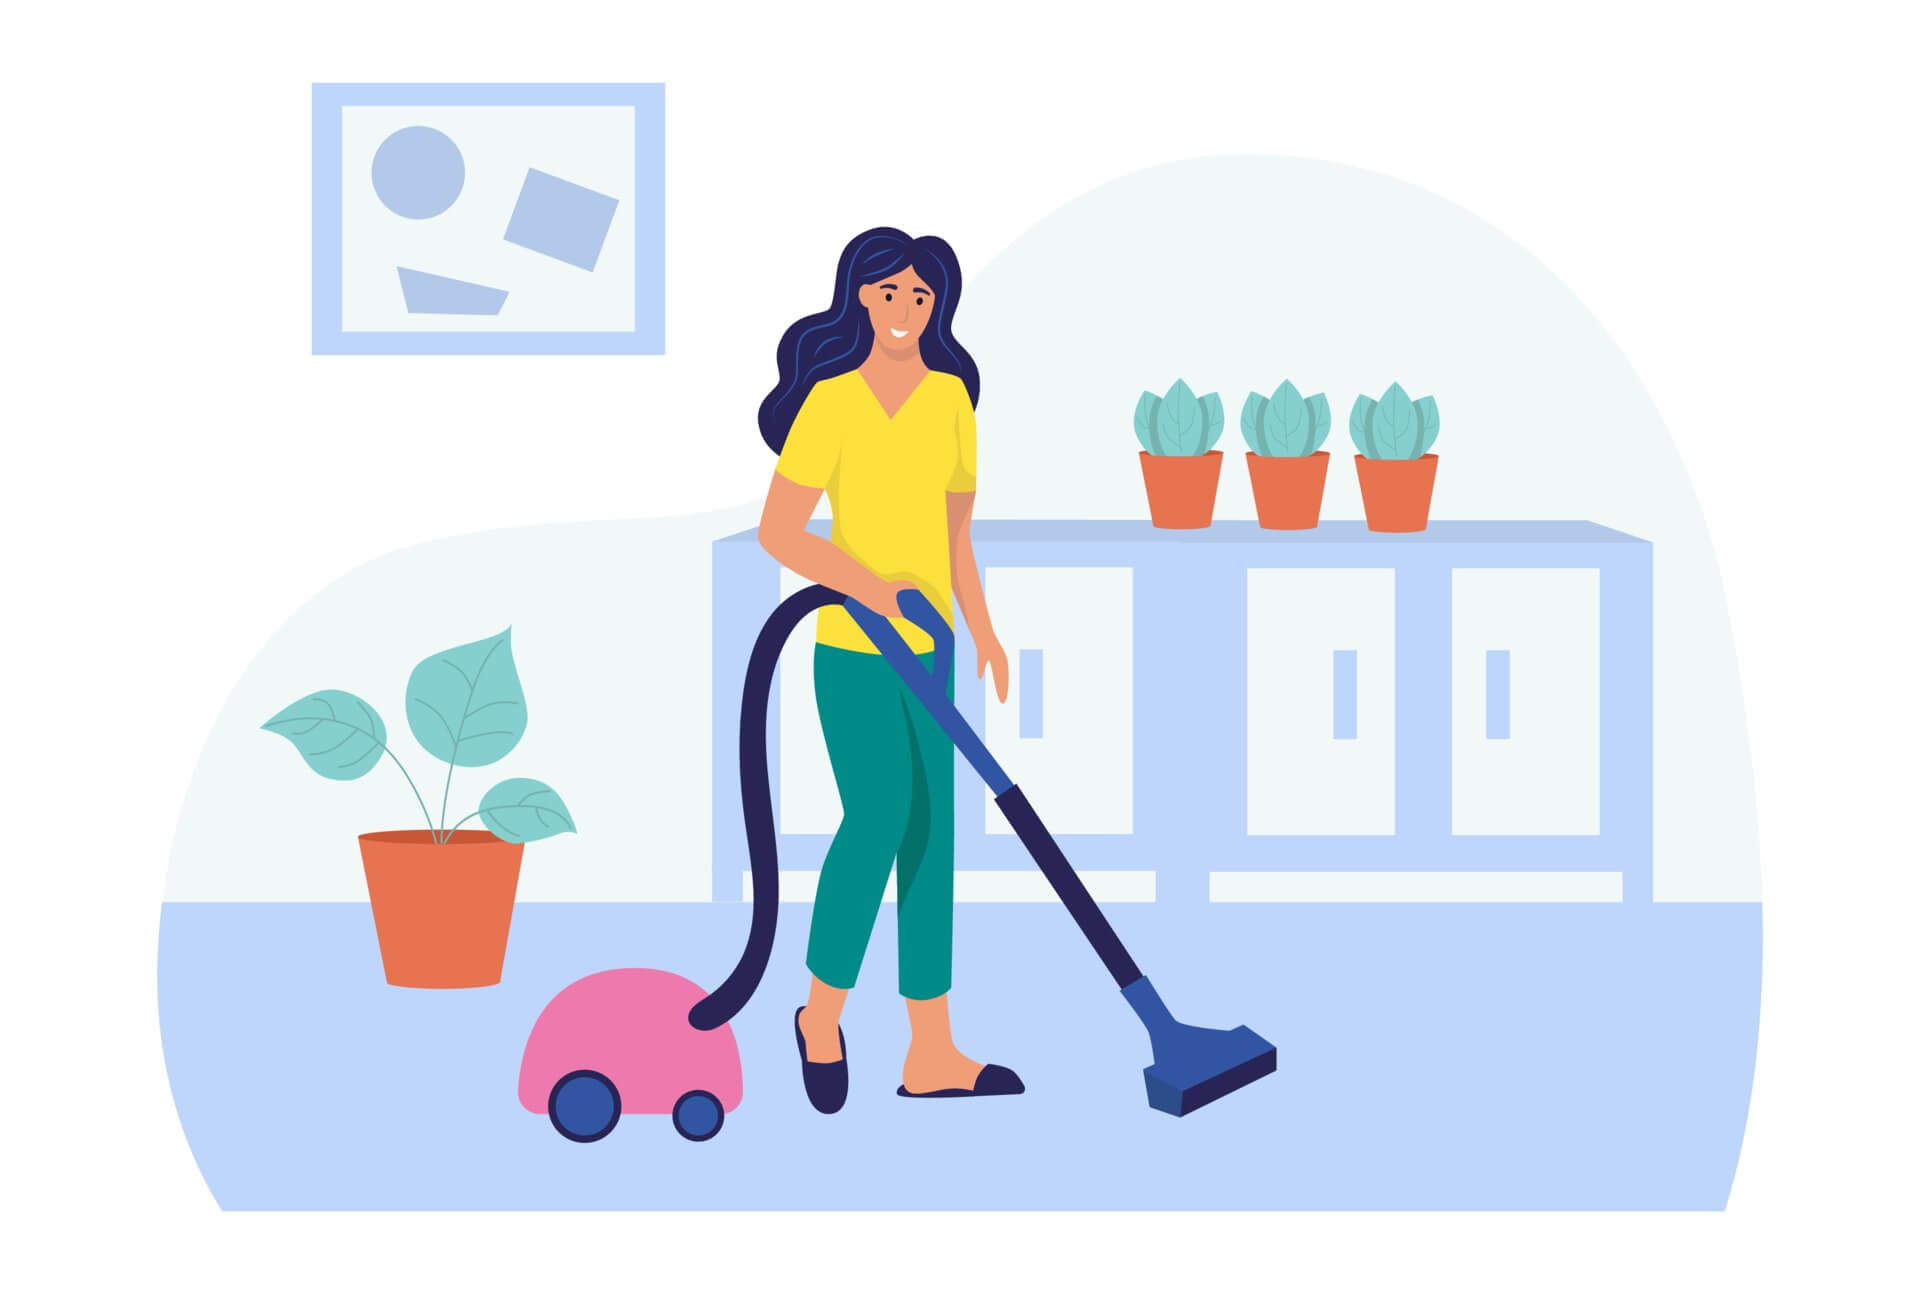 5 Best Corded Stick Vacuums in 2021